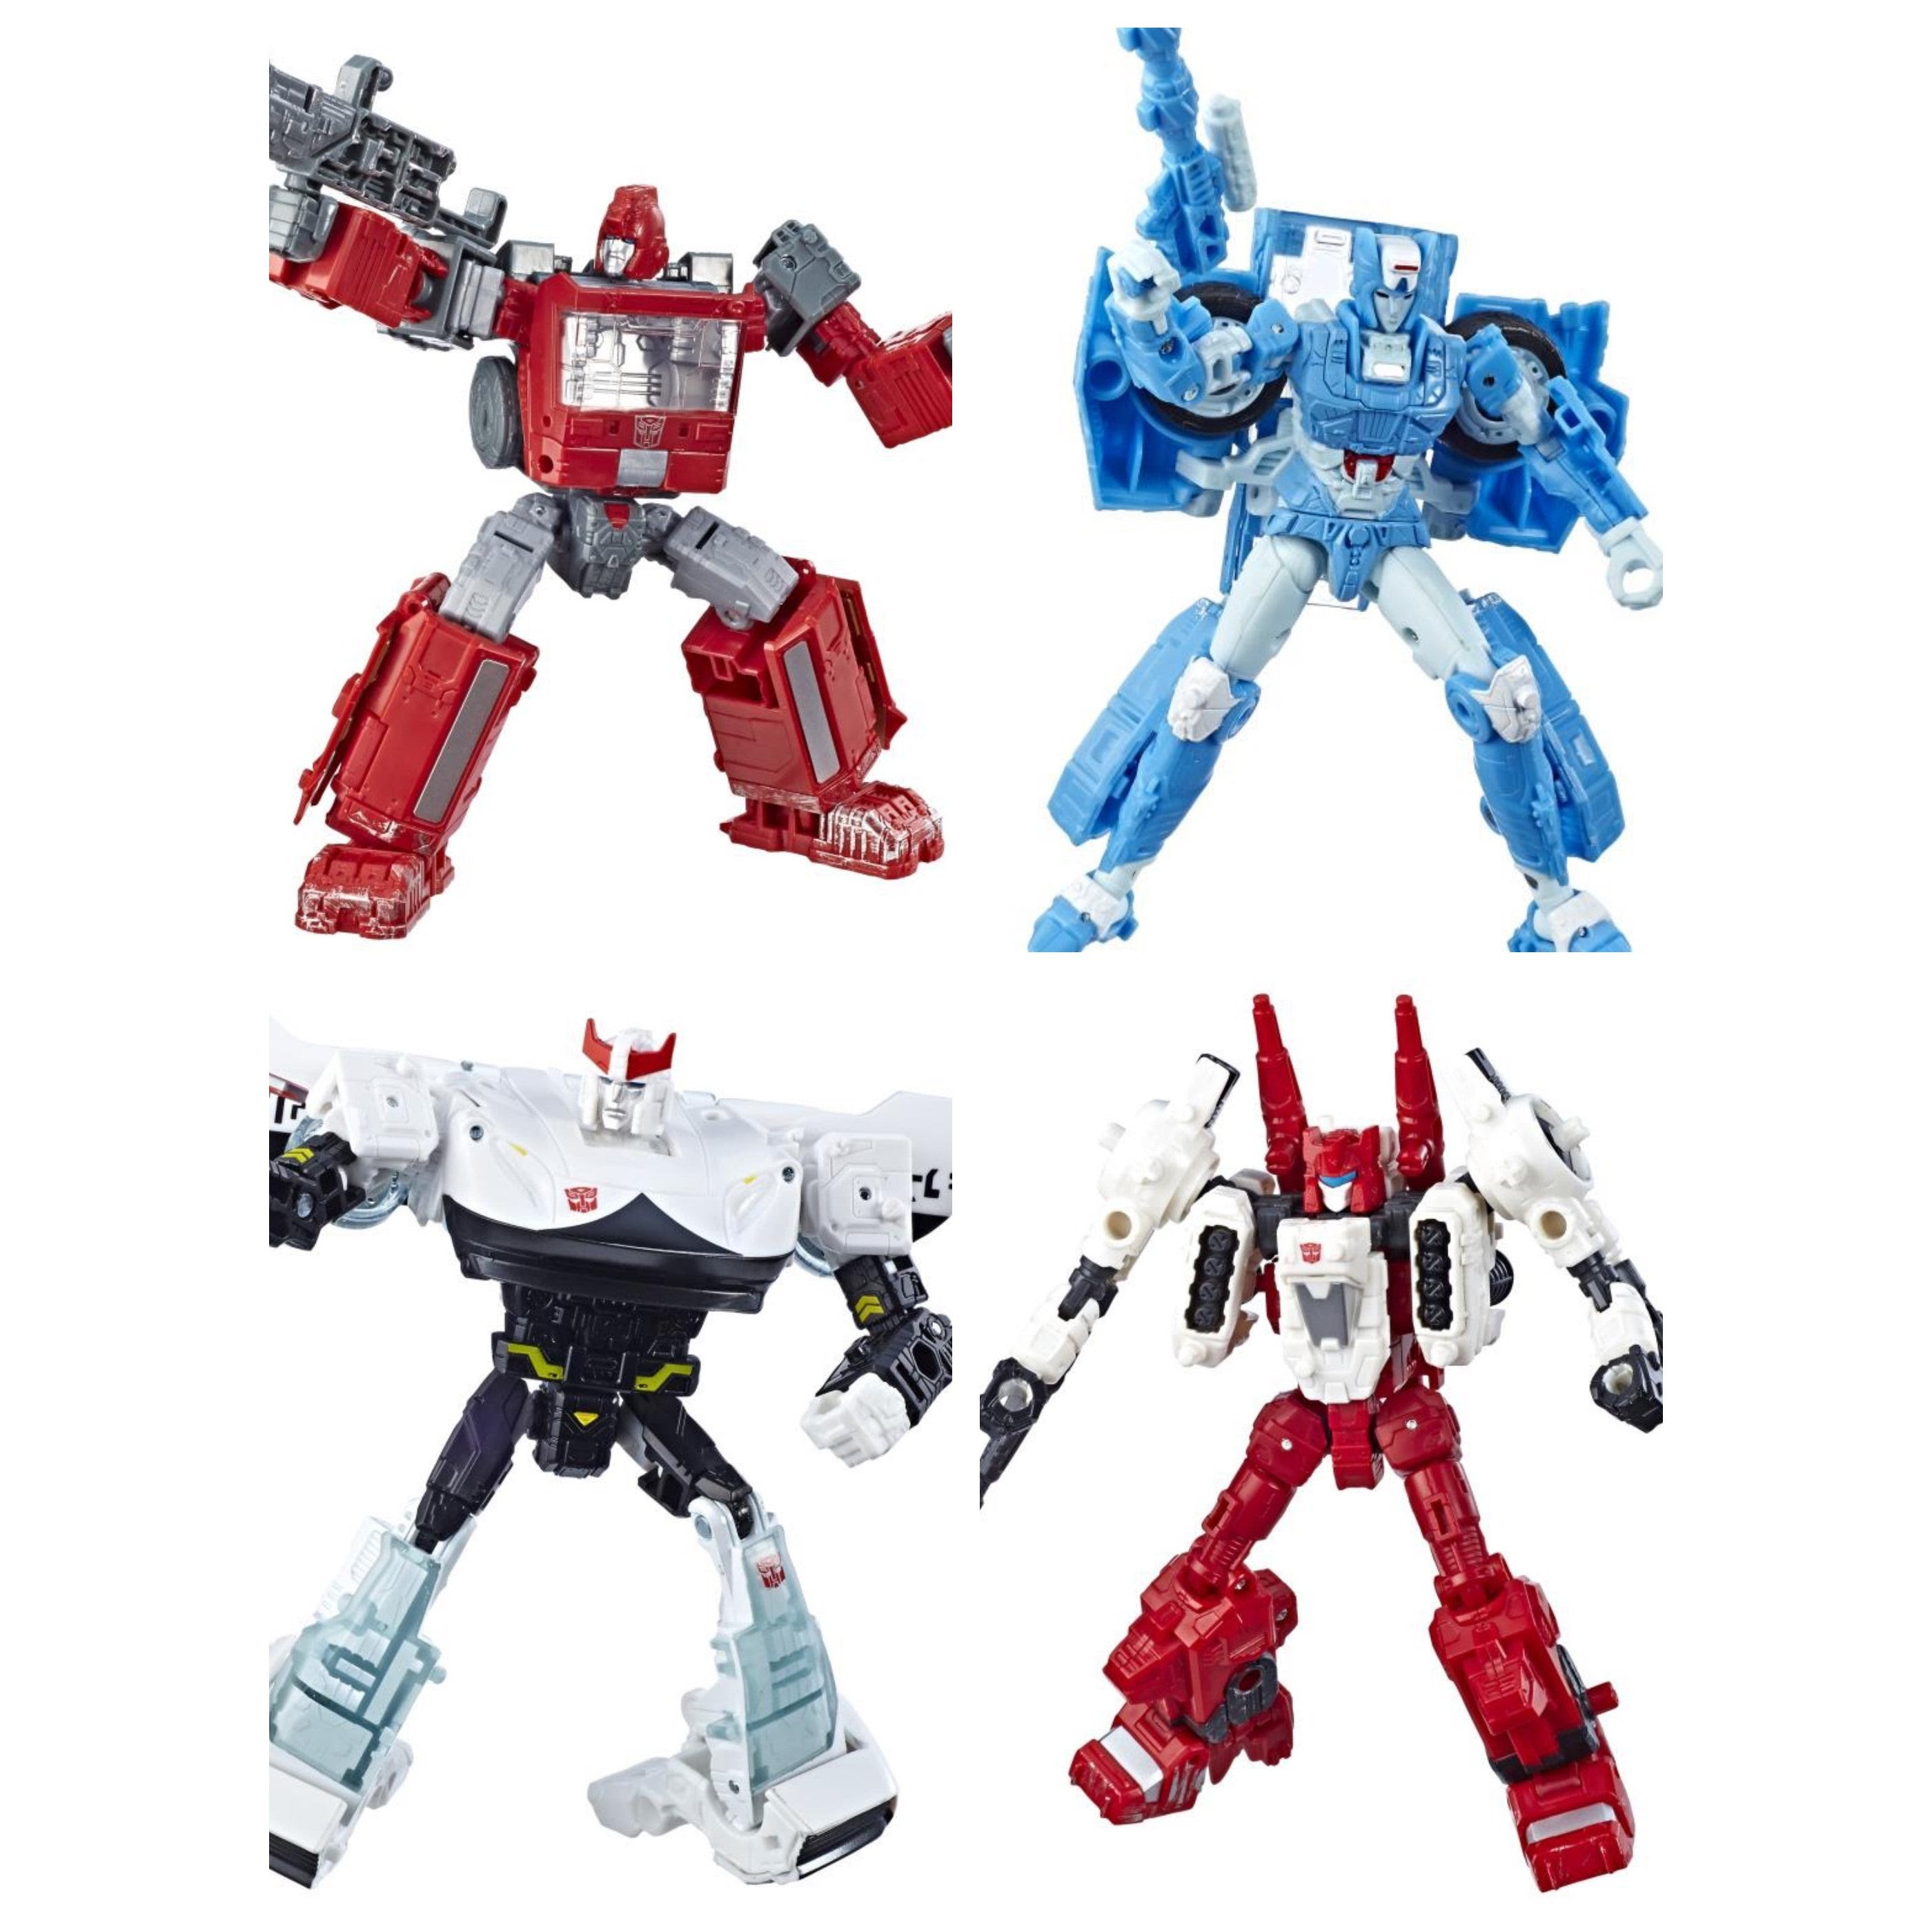 Image of Transformers War for Cybertron: Siege Deluxe Wave 2 - Set of 4